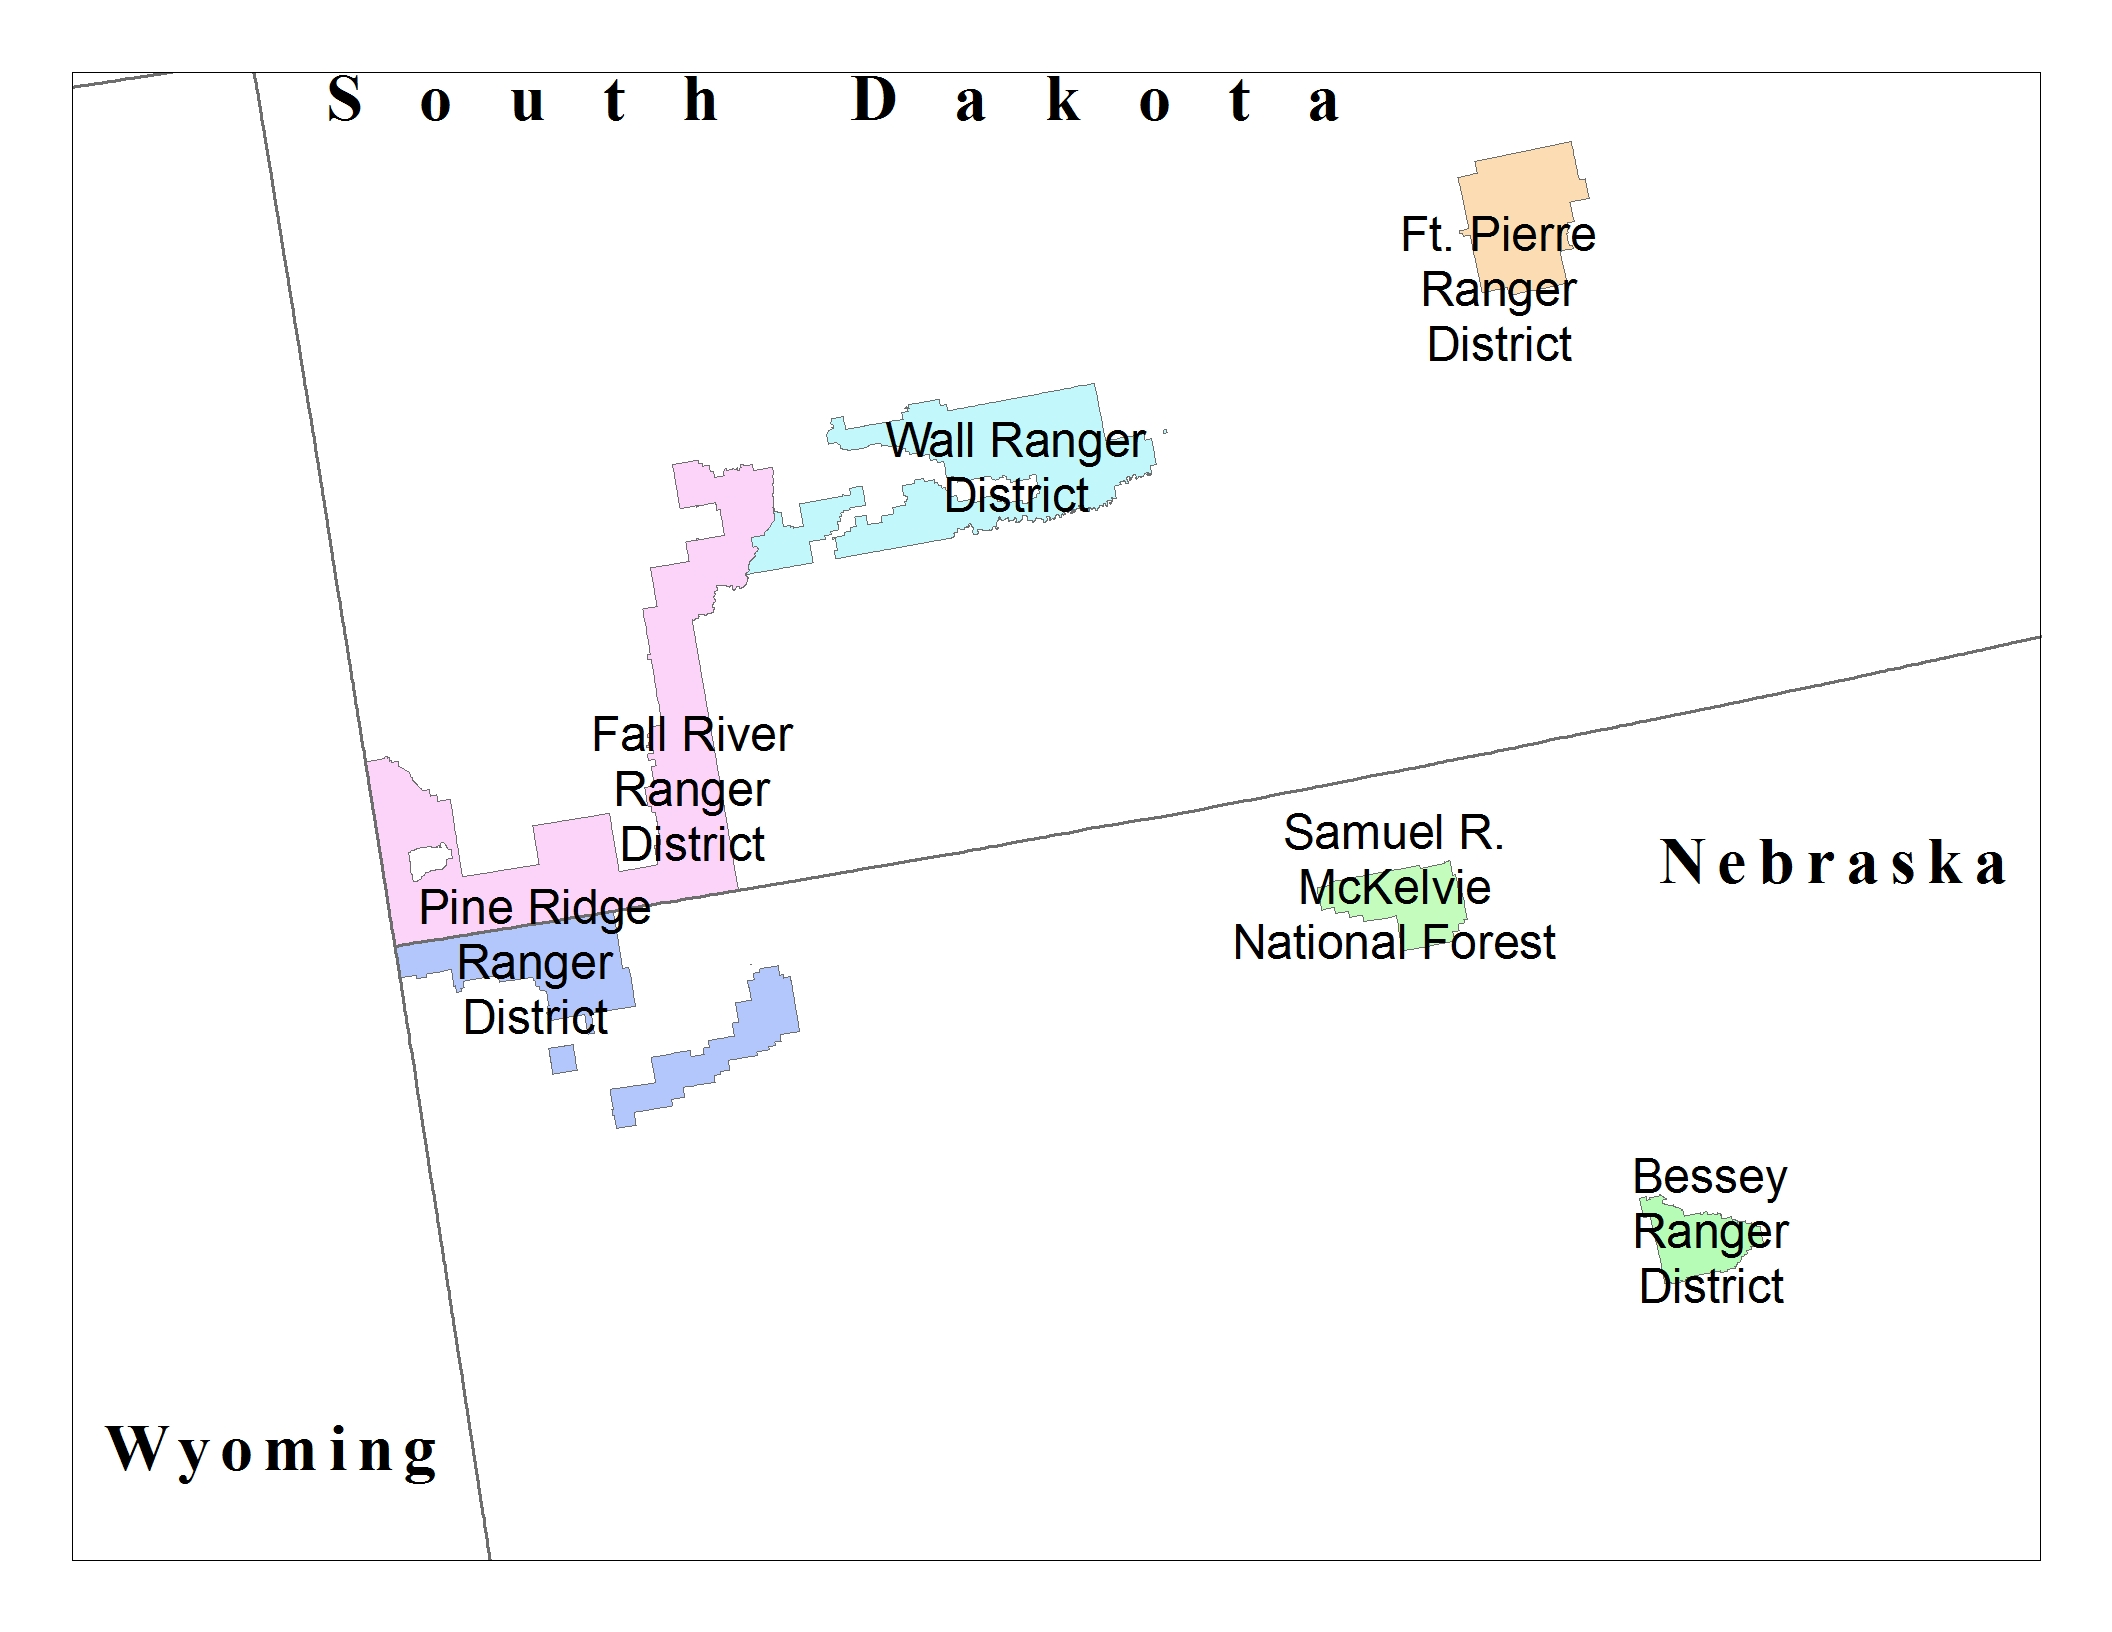 Map of Ranger District boundaries